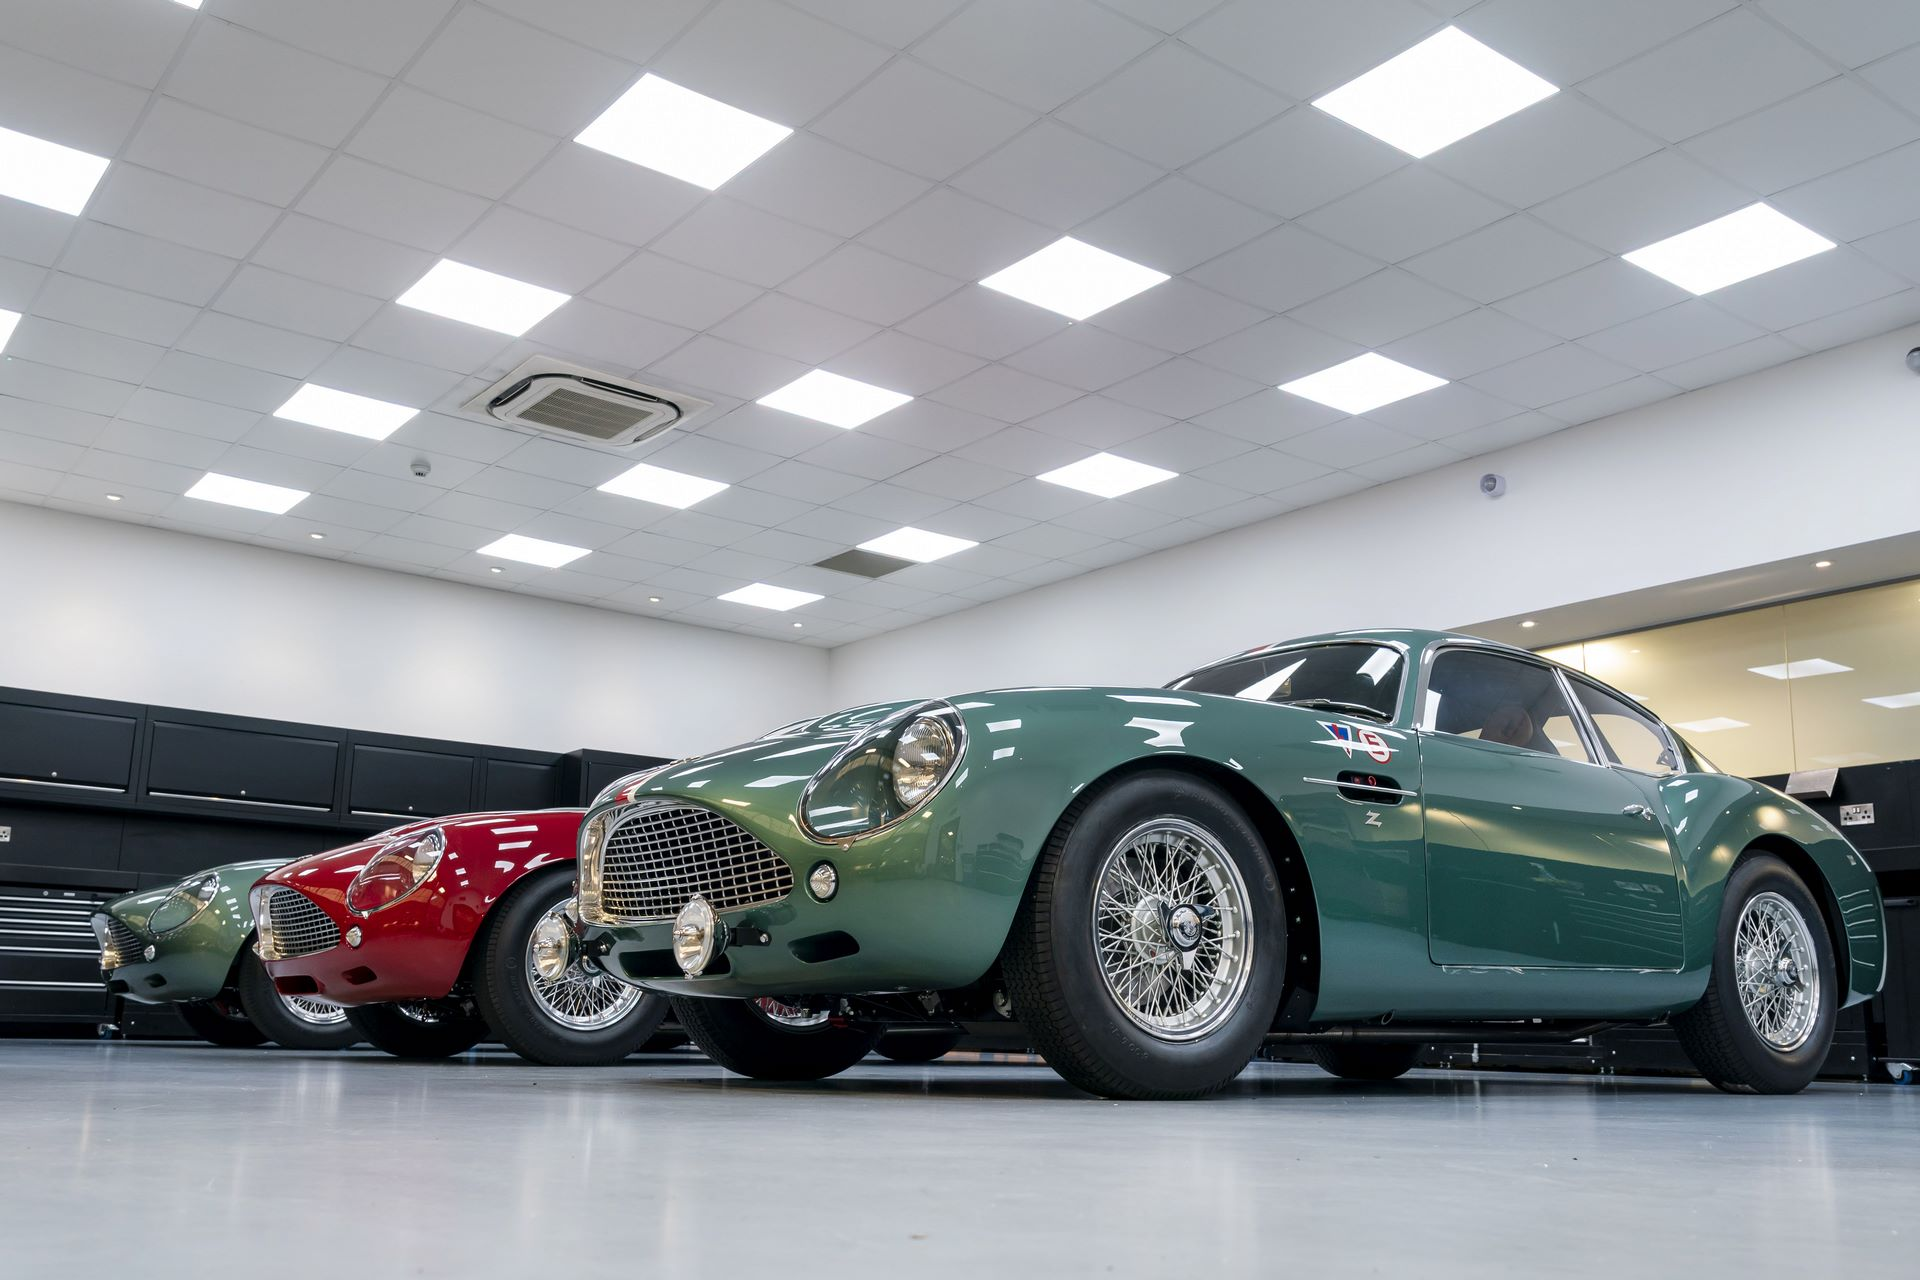 Aston-Martin-DB4-GT-Zagato-Continuation-first-delivery-13